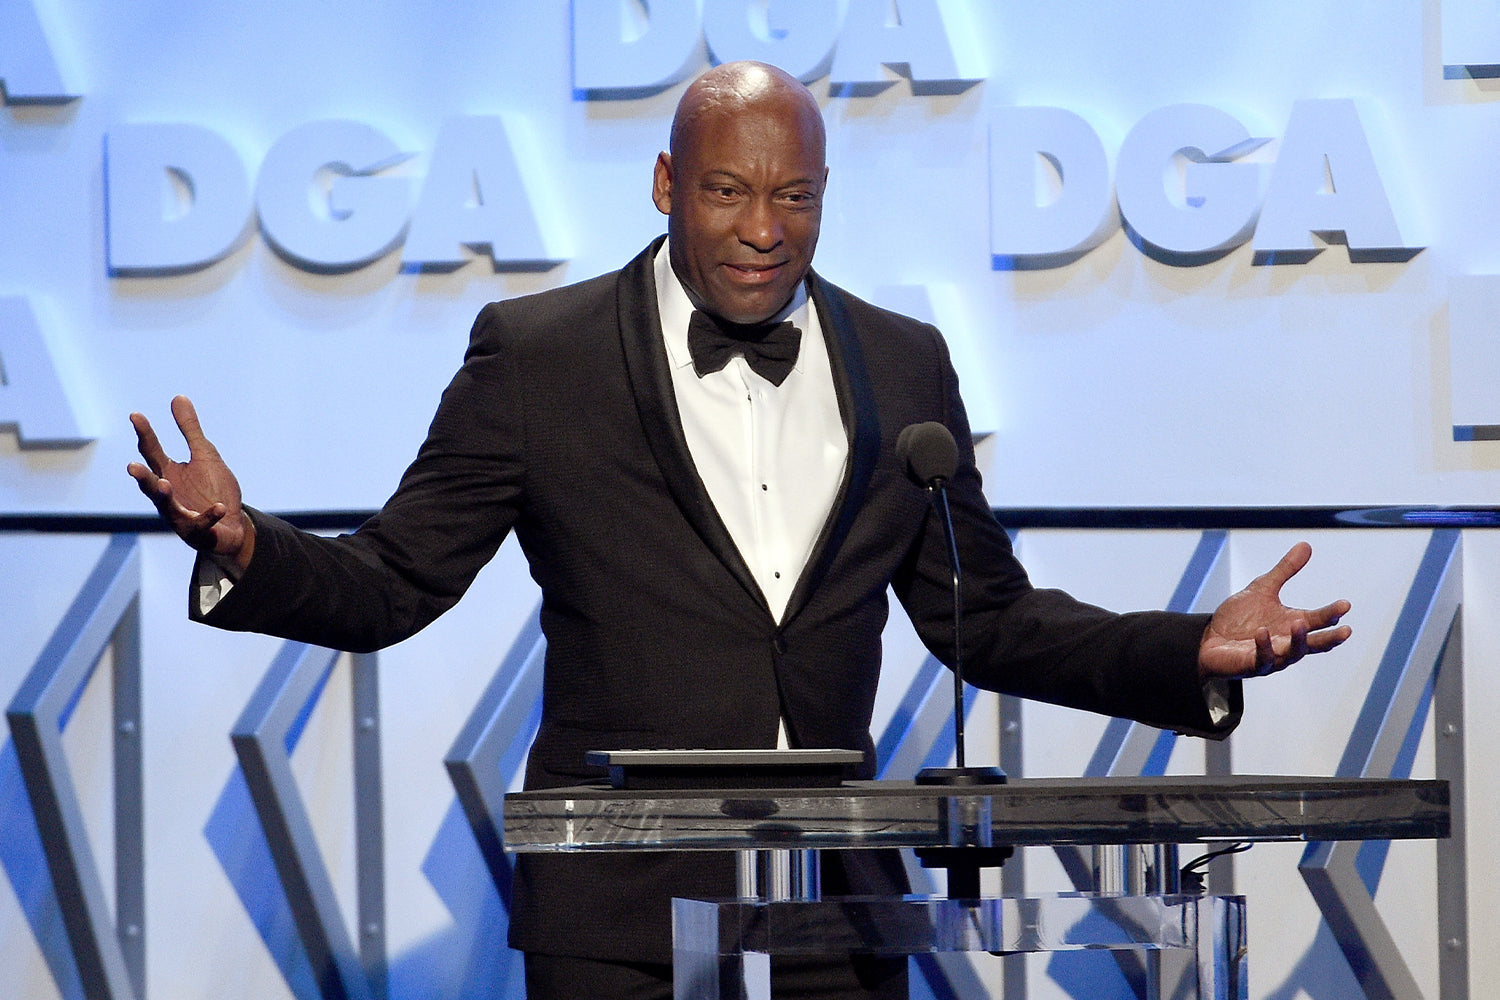 Director John Singleton speaks onstage during the 70th Annual Directors Guild Of America Awards at The Beverly Hilton Hotel on February 3, 2018 in Beverly Hills, California. (Photo by Kevork Djansezian/Getty Images for DGA)